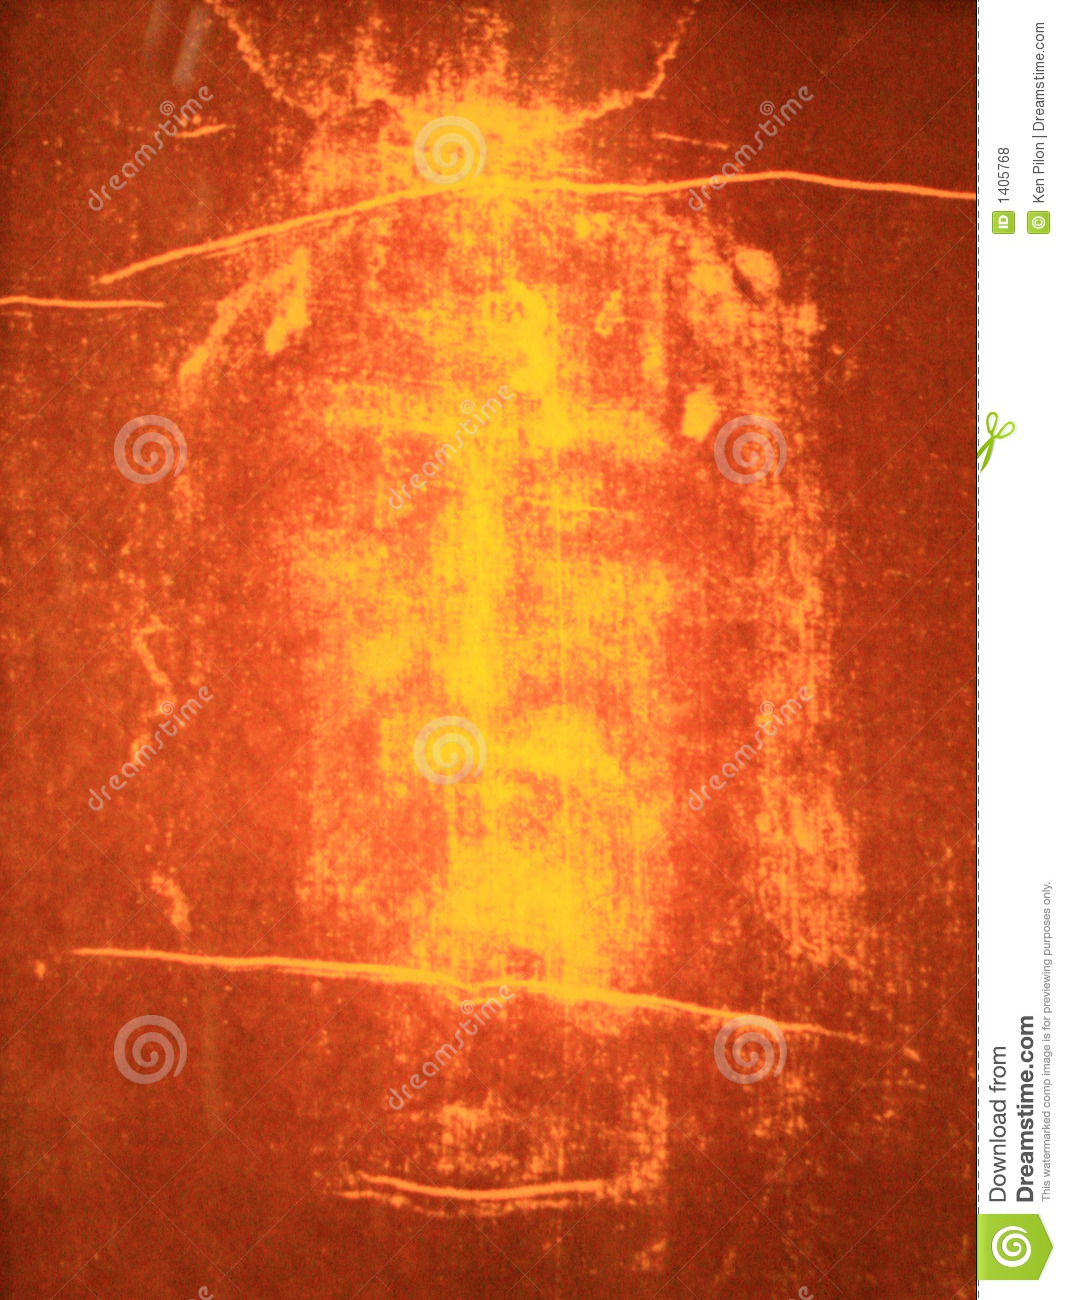 Image of the Lord Jesus Christ